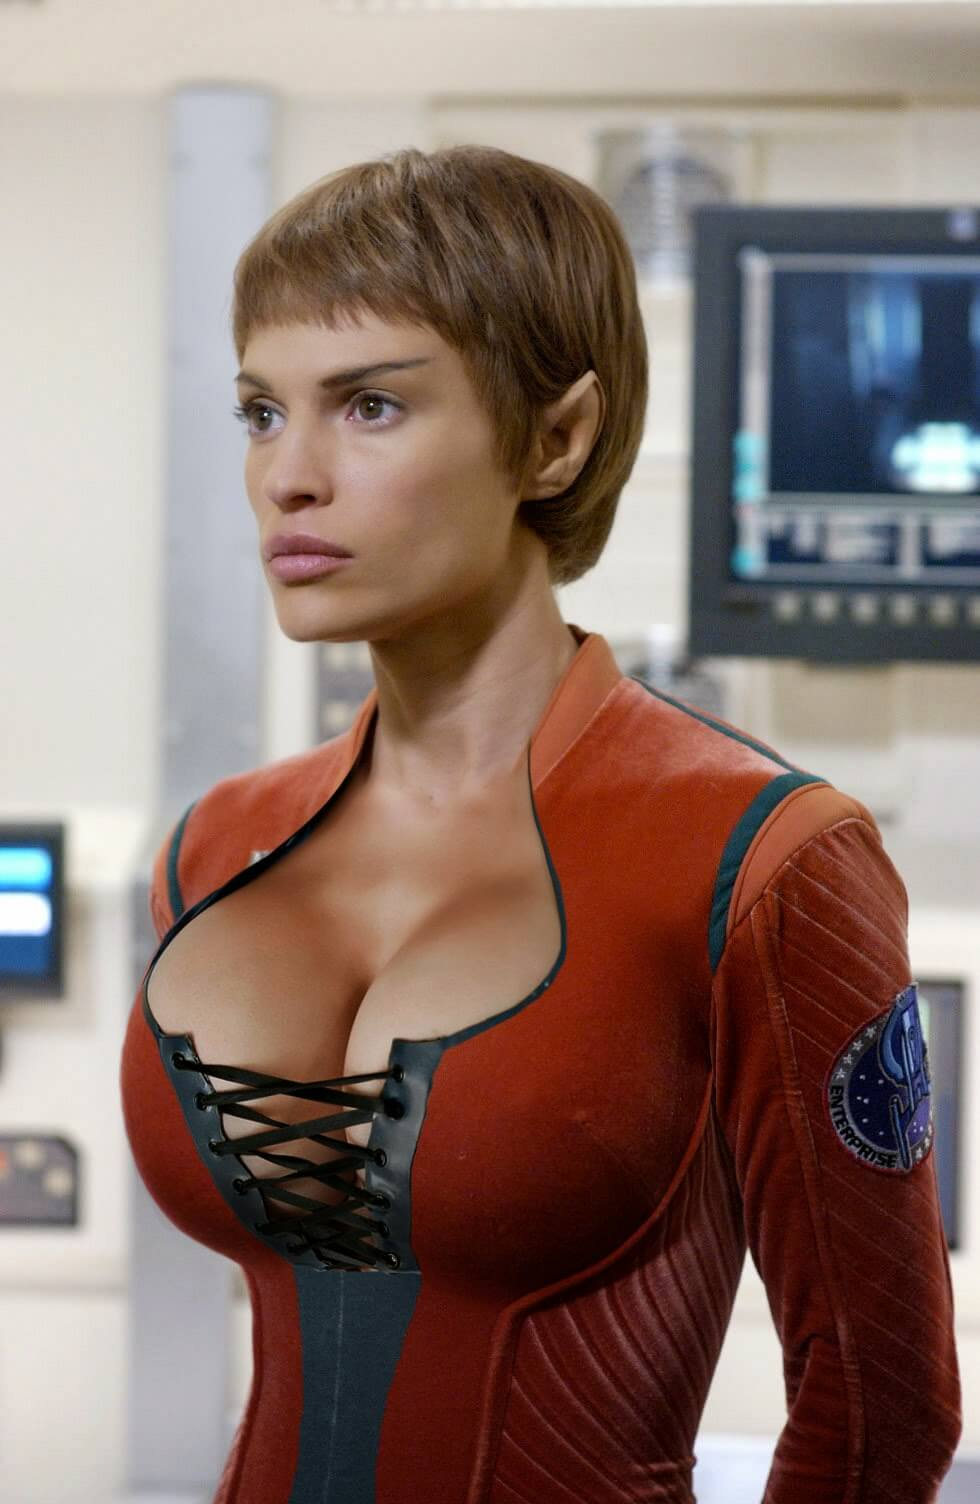 Jolene blalock cleavage photo